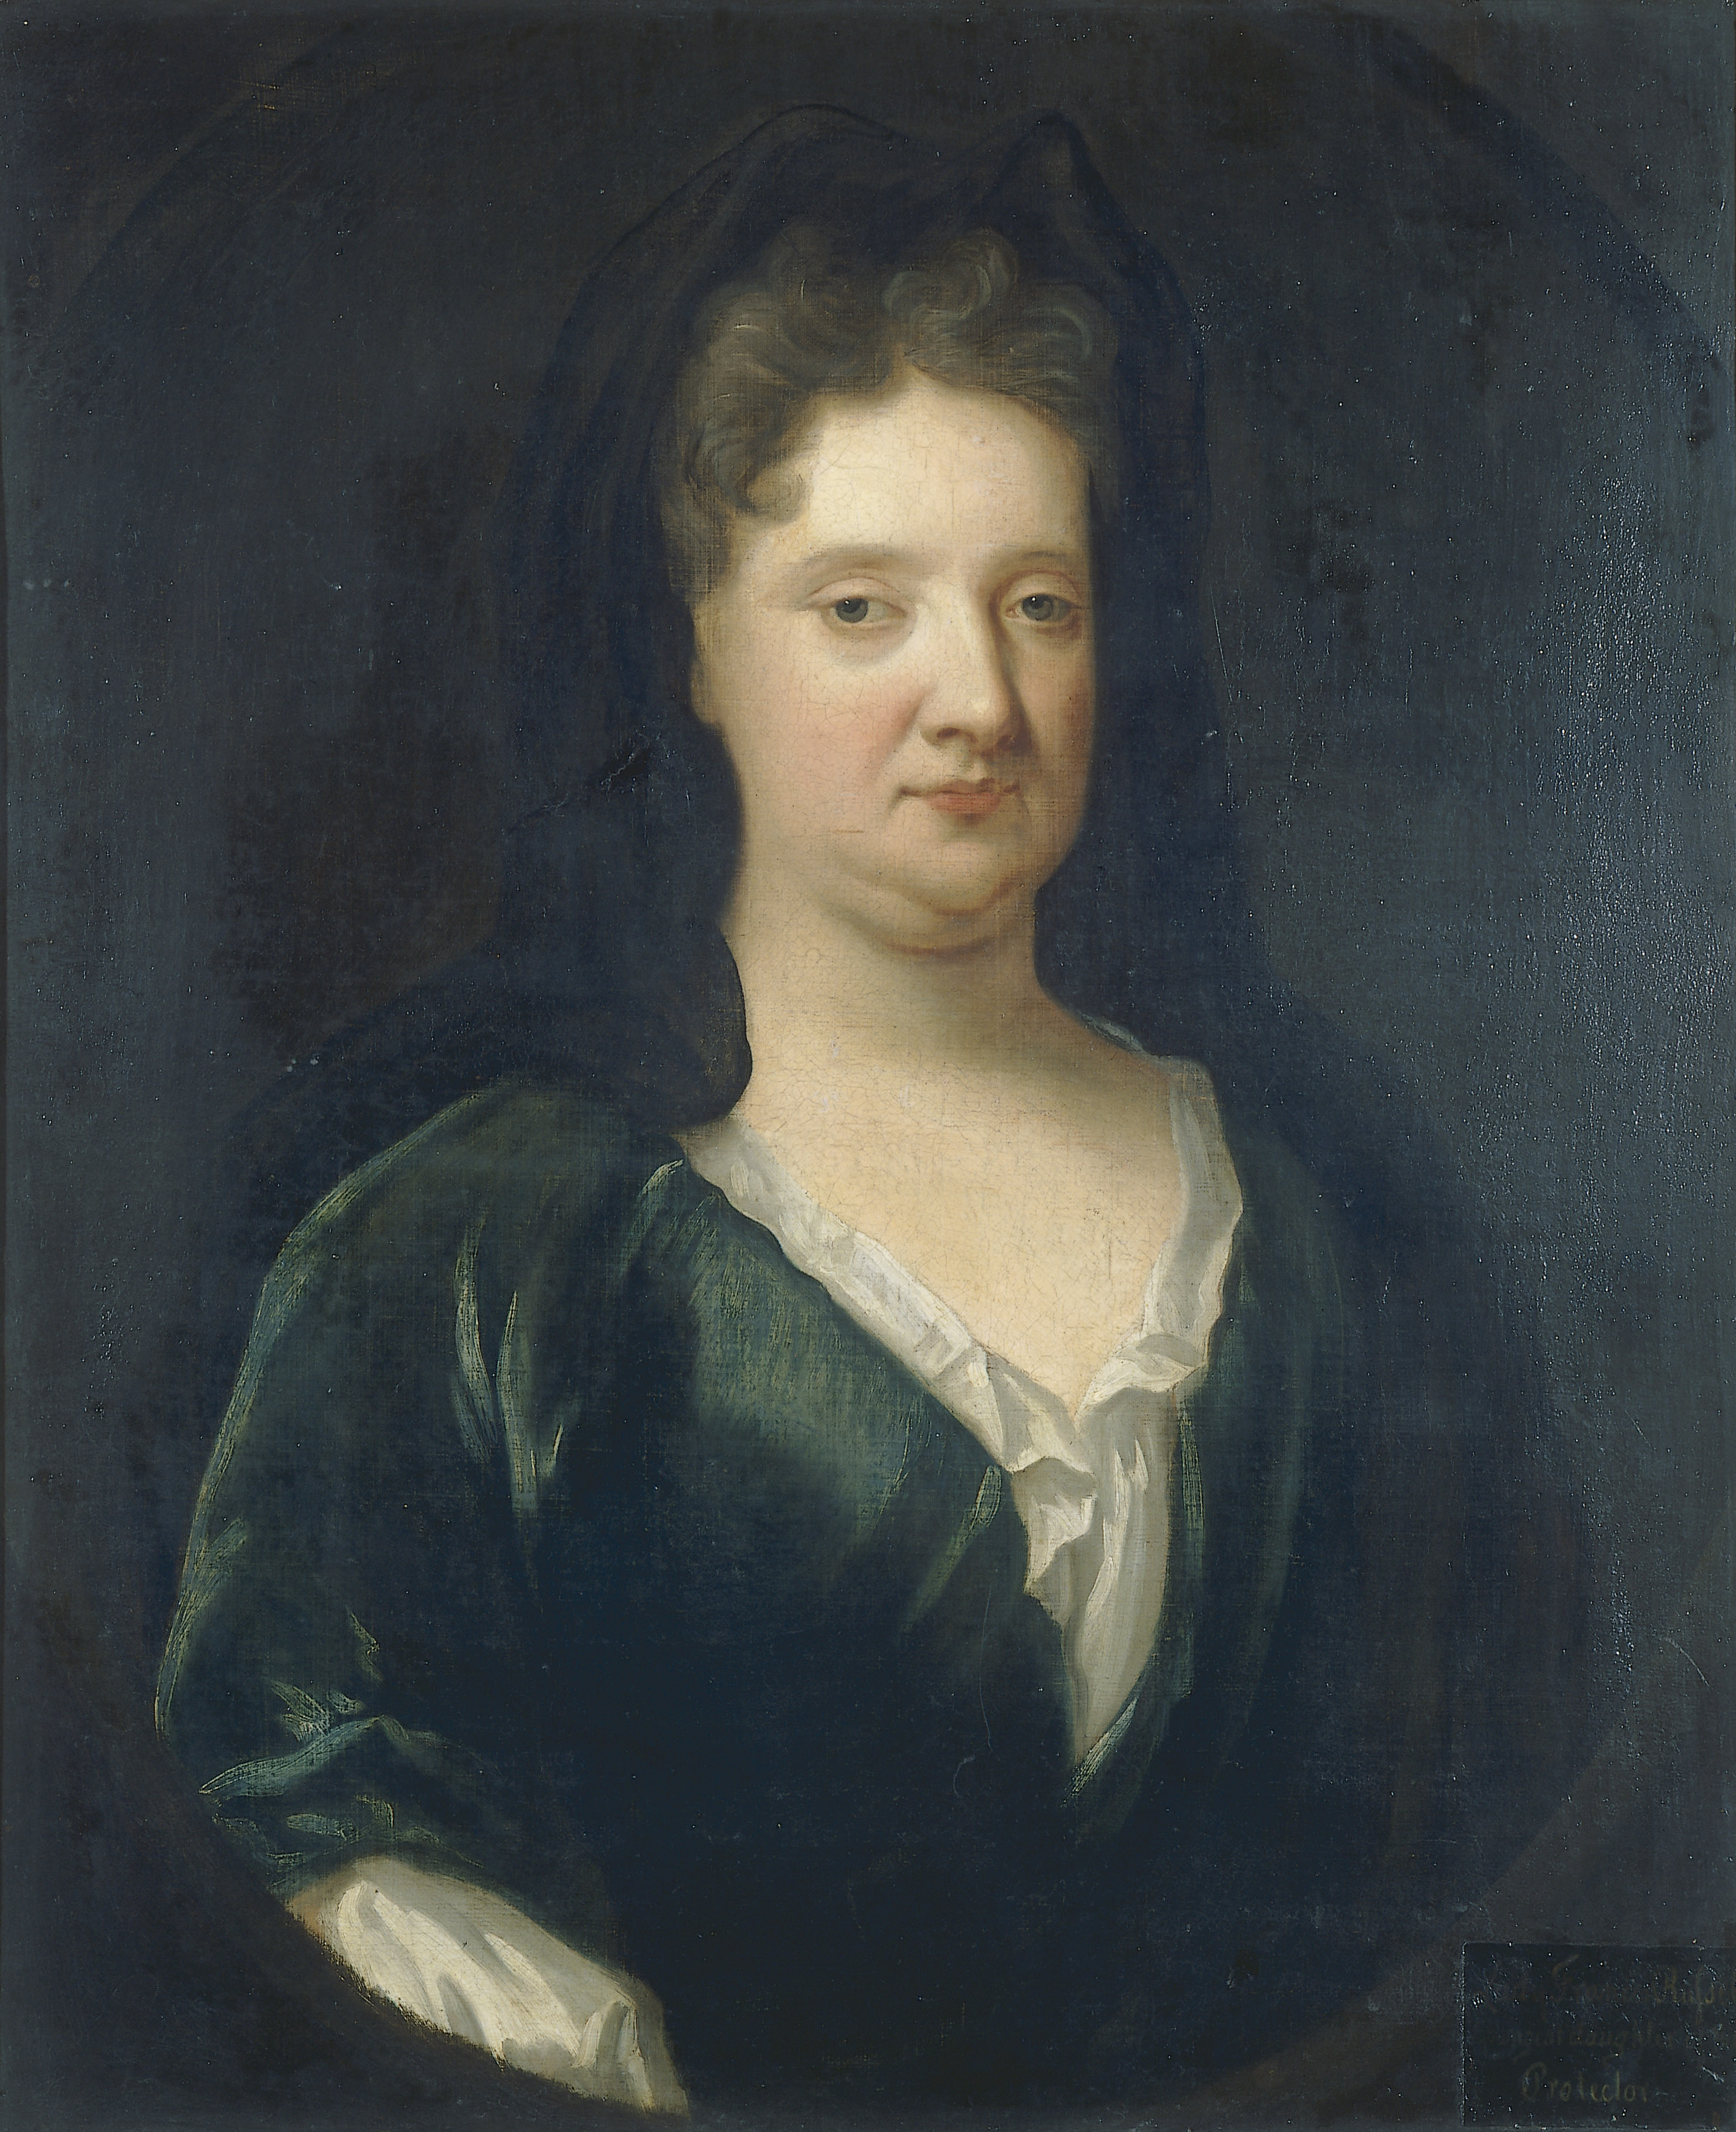 Portrait of Lady Frances Russell (Cromwell) by John Riley, c. 1670, Oil on Canvas. thumbnail